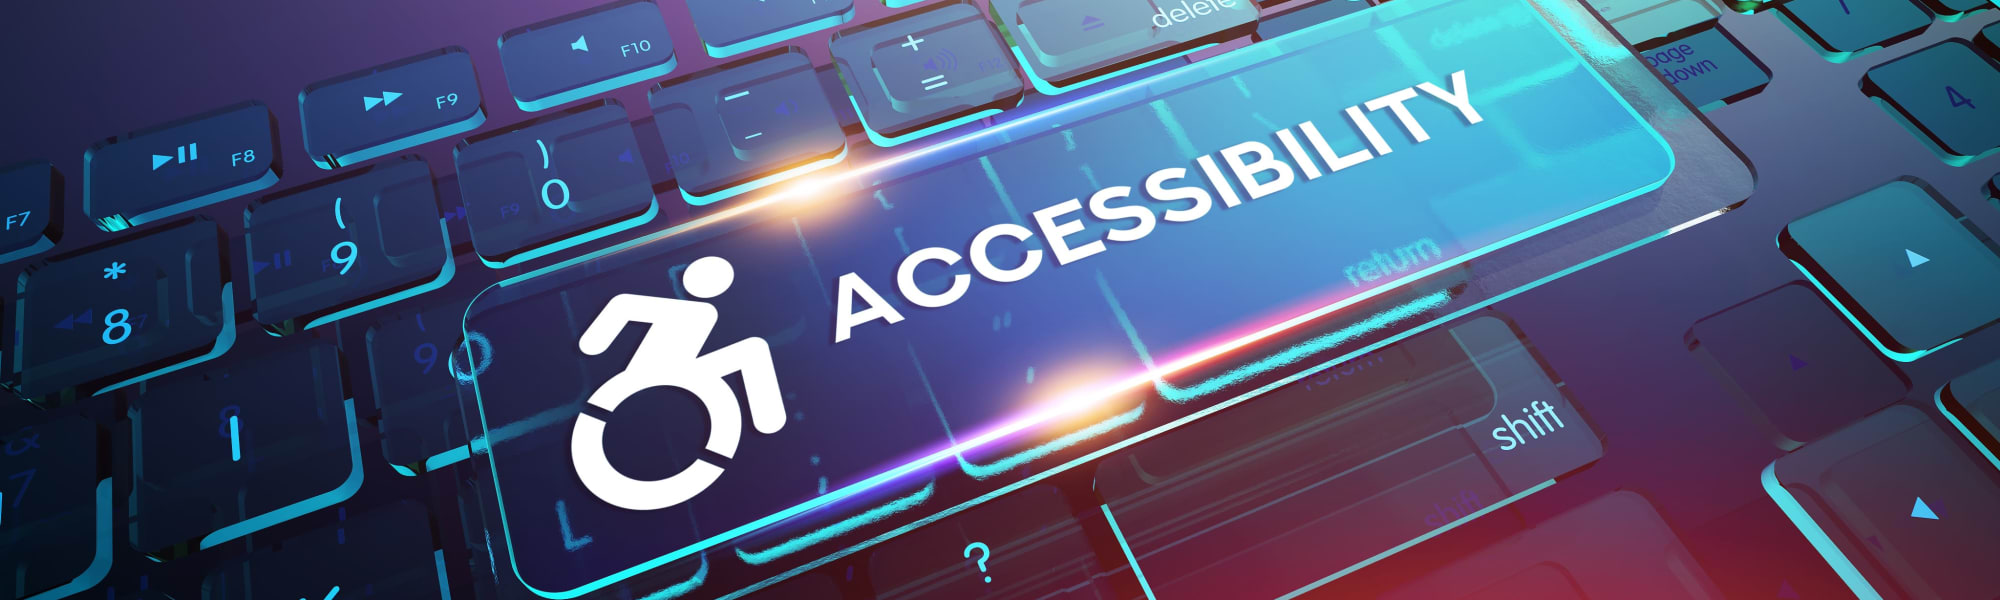 Accessibility policy for Tacara at Westover Hills in San Antonio, Texas